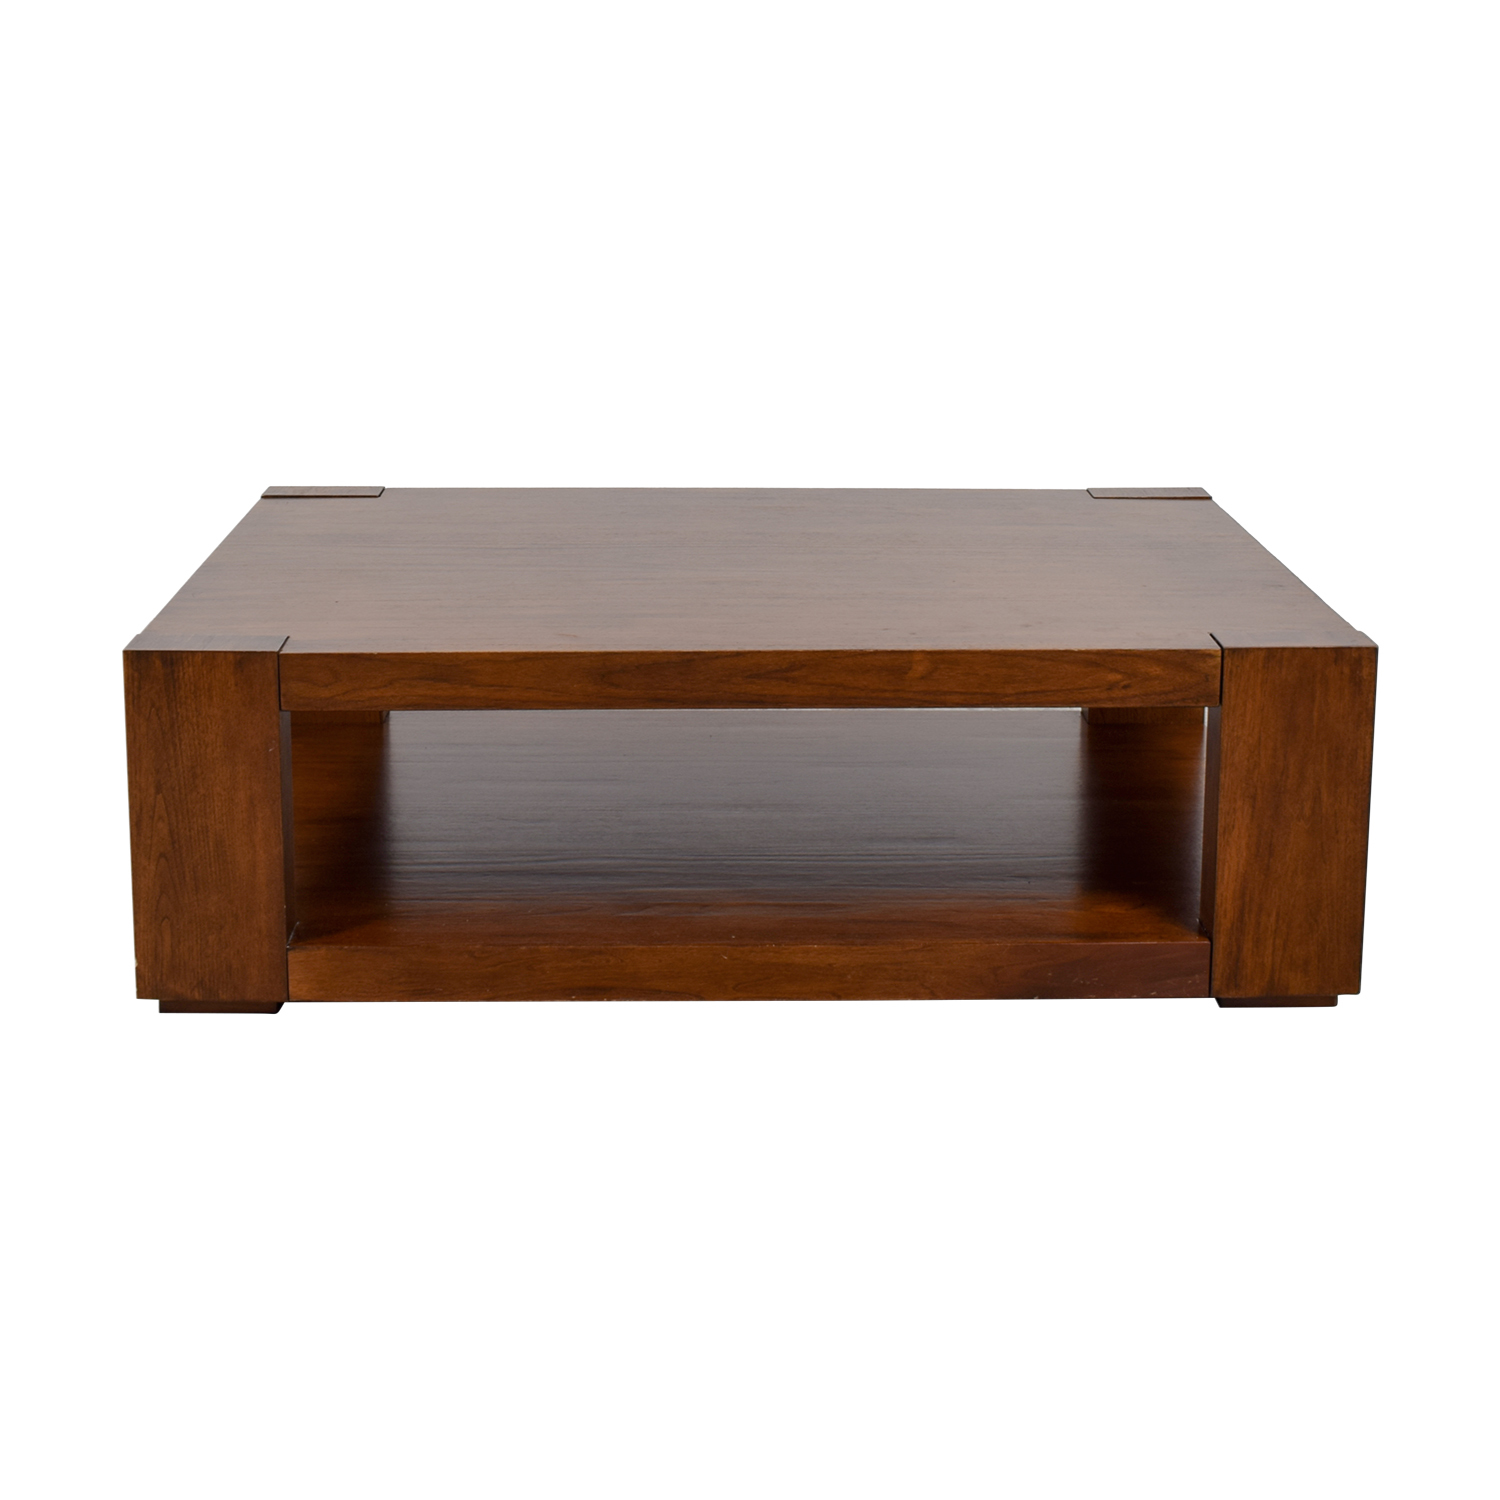 65 off crate barrel crate barrel lodge coffee table tables